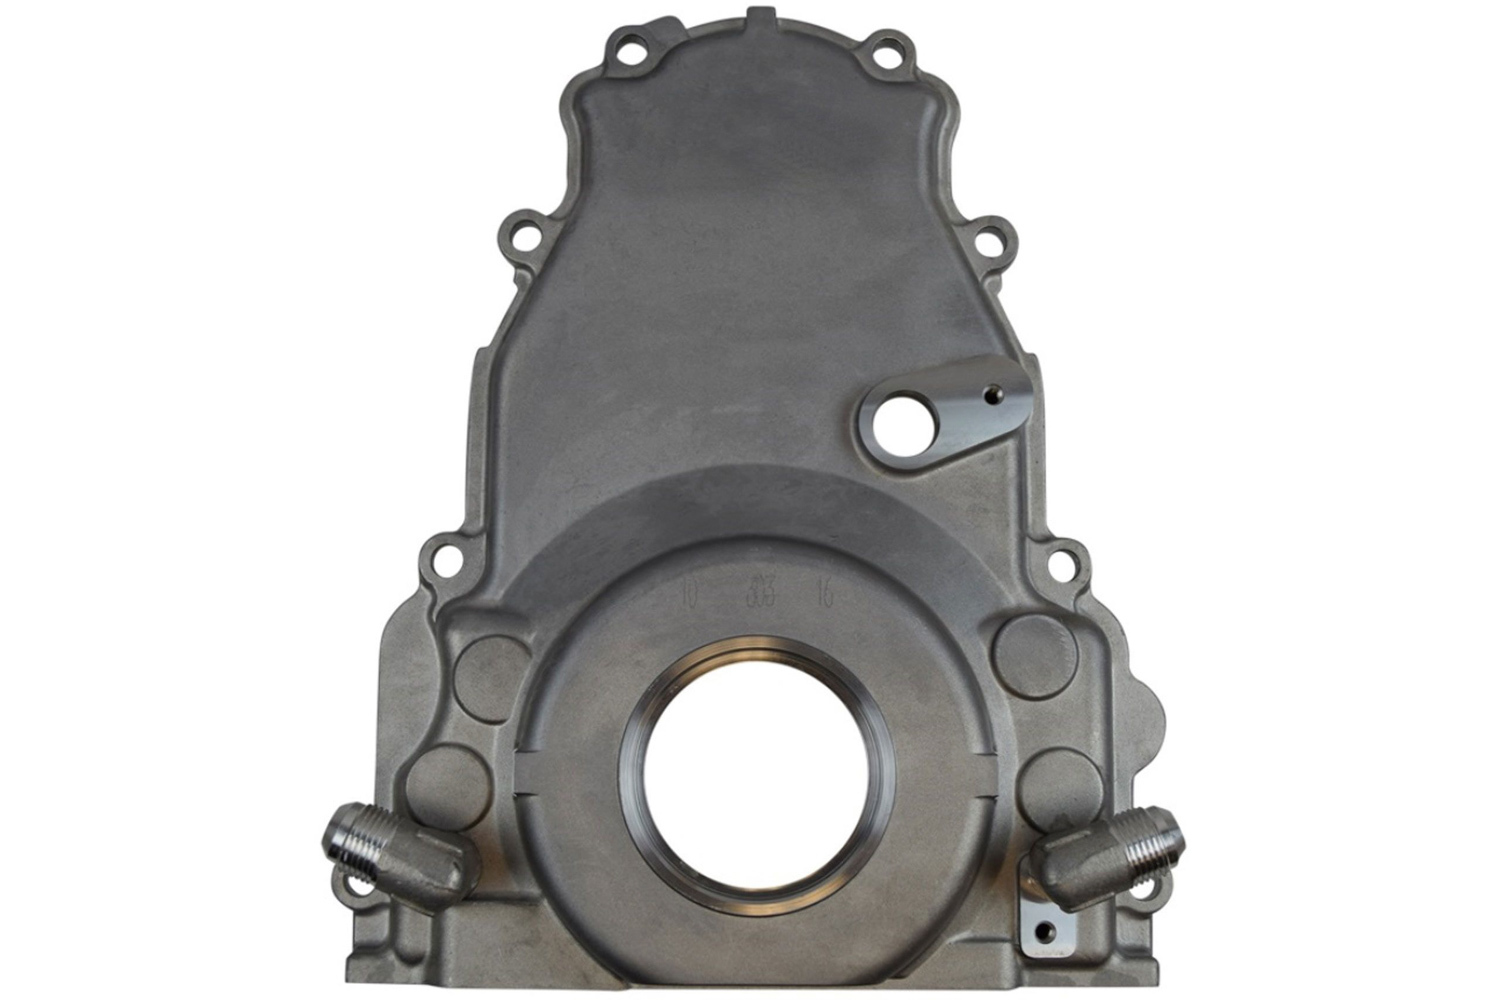 ICT Billet 551595 Timing Cover, 1 Piece, Seal Included, 10 An Returns, Aluminum, Natural, GM LS-Series, Each